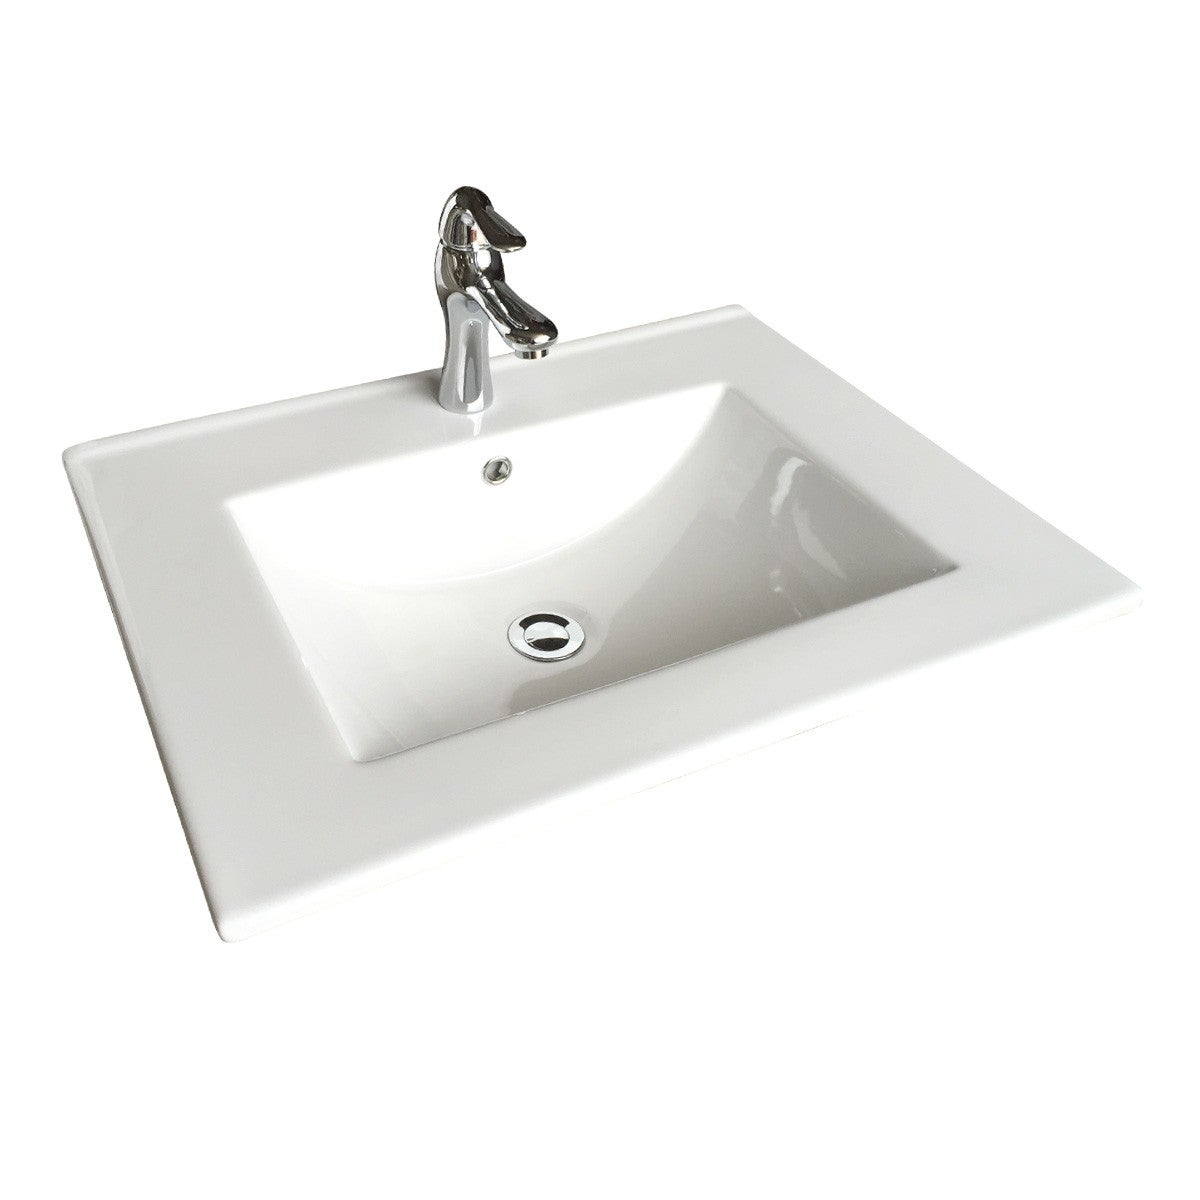 Square White Bathroom Sink With Faucet And Drain Drop In Self